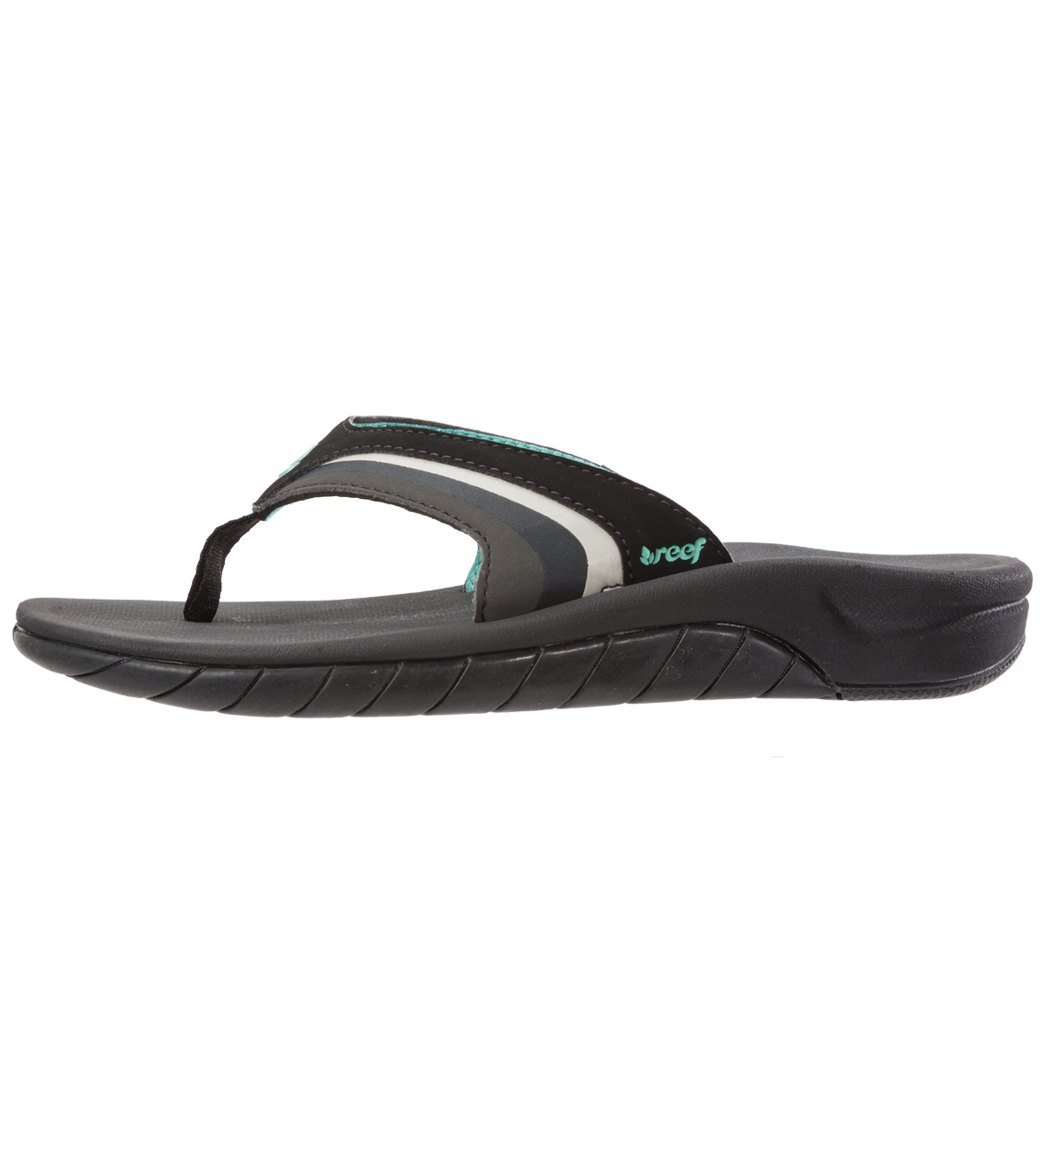 10abecb6d141 Reef Women s Reef Slap 3 Flip Flop at SwimOutlet.com